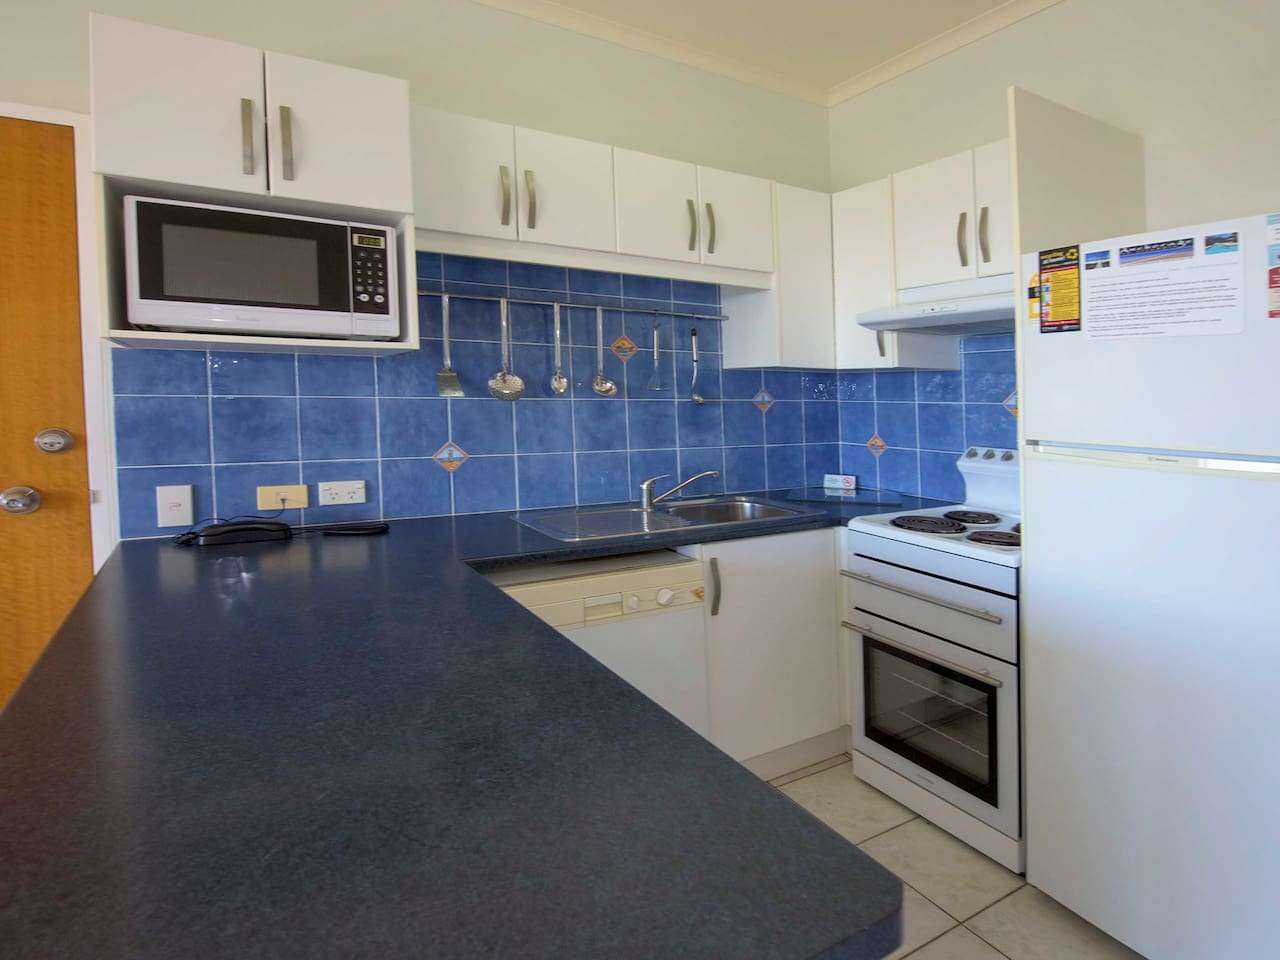 One of the 1 Bedroom Unit Kitchens